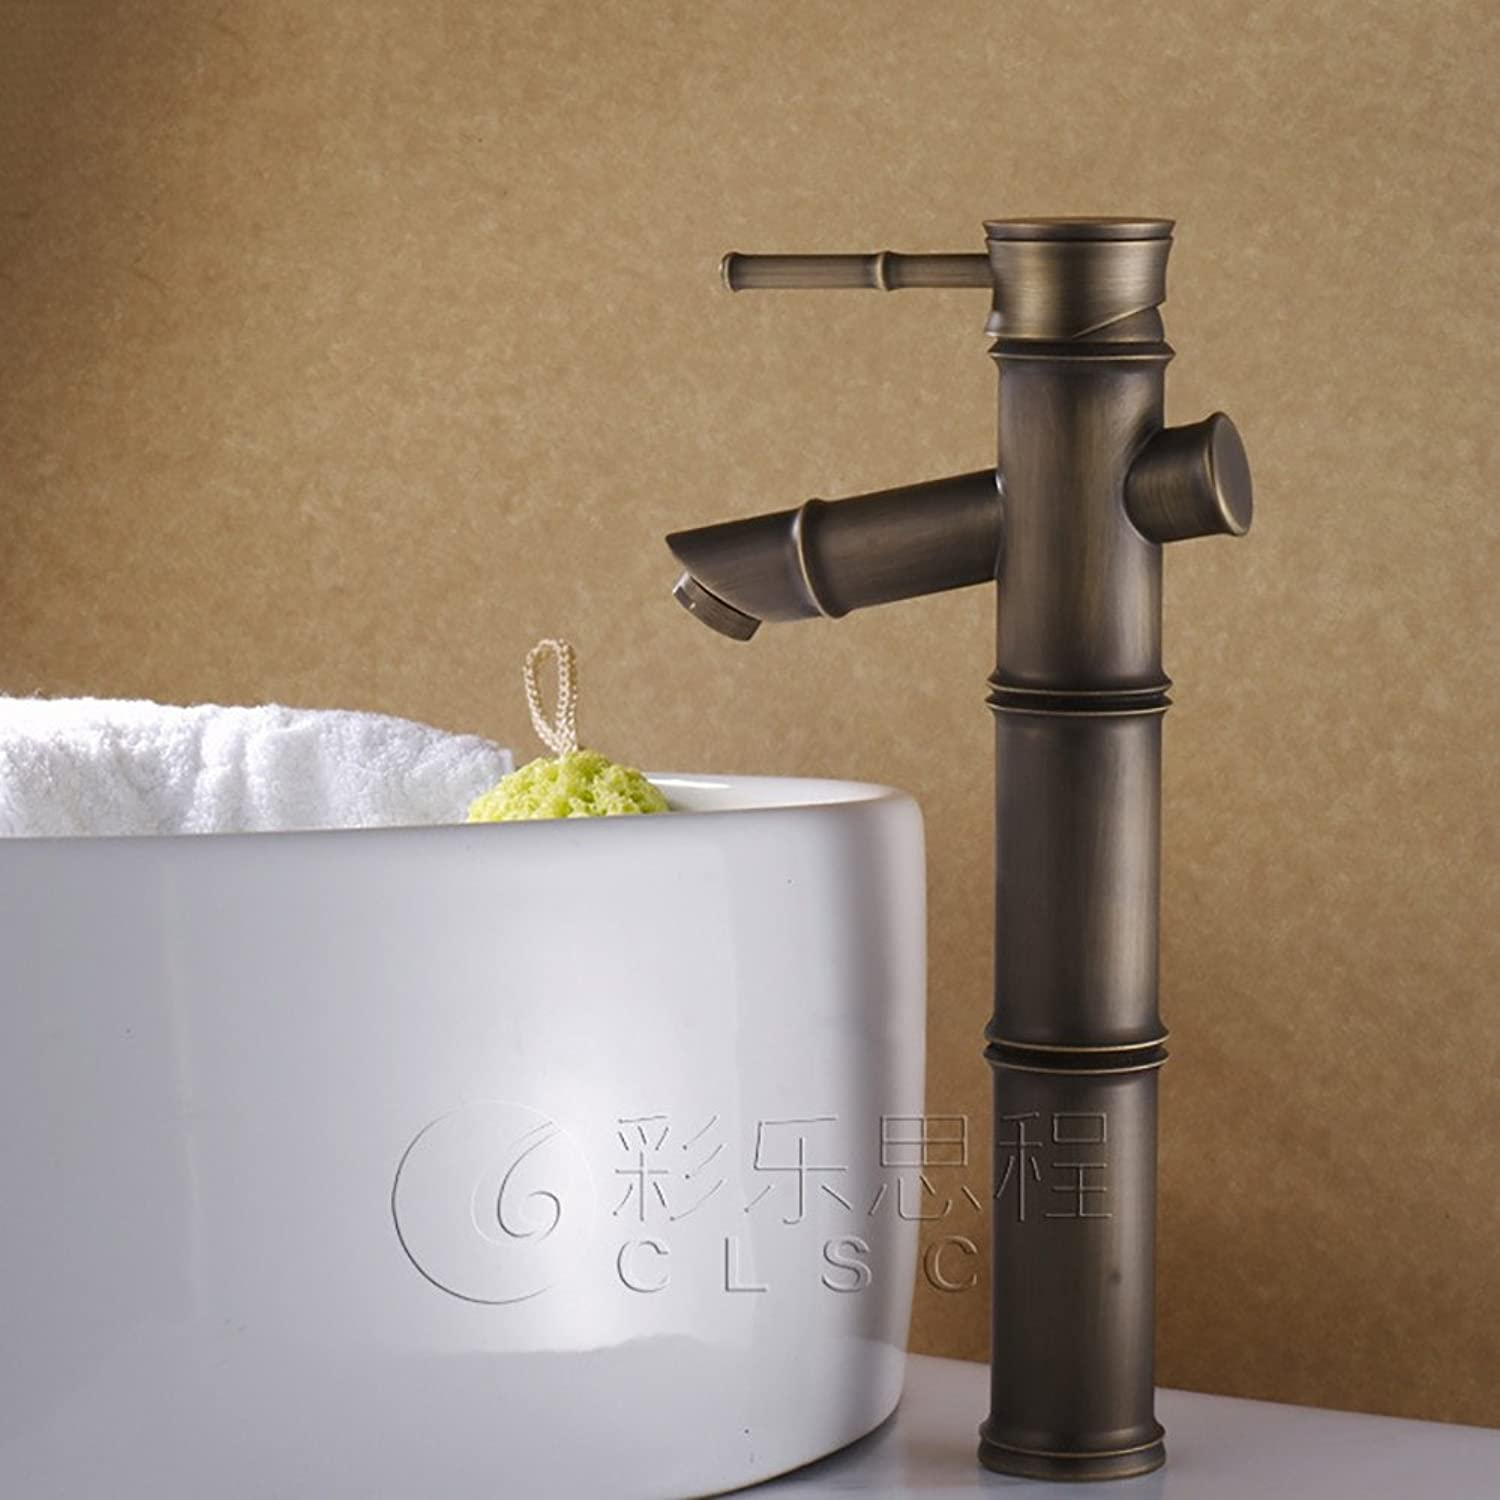 Hlluya Professional Sink Mixer Tap Kitchen Faucet The Antique copper single hole hot and cold basin mixer